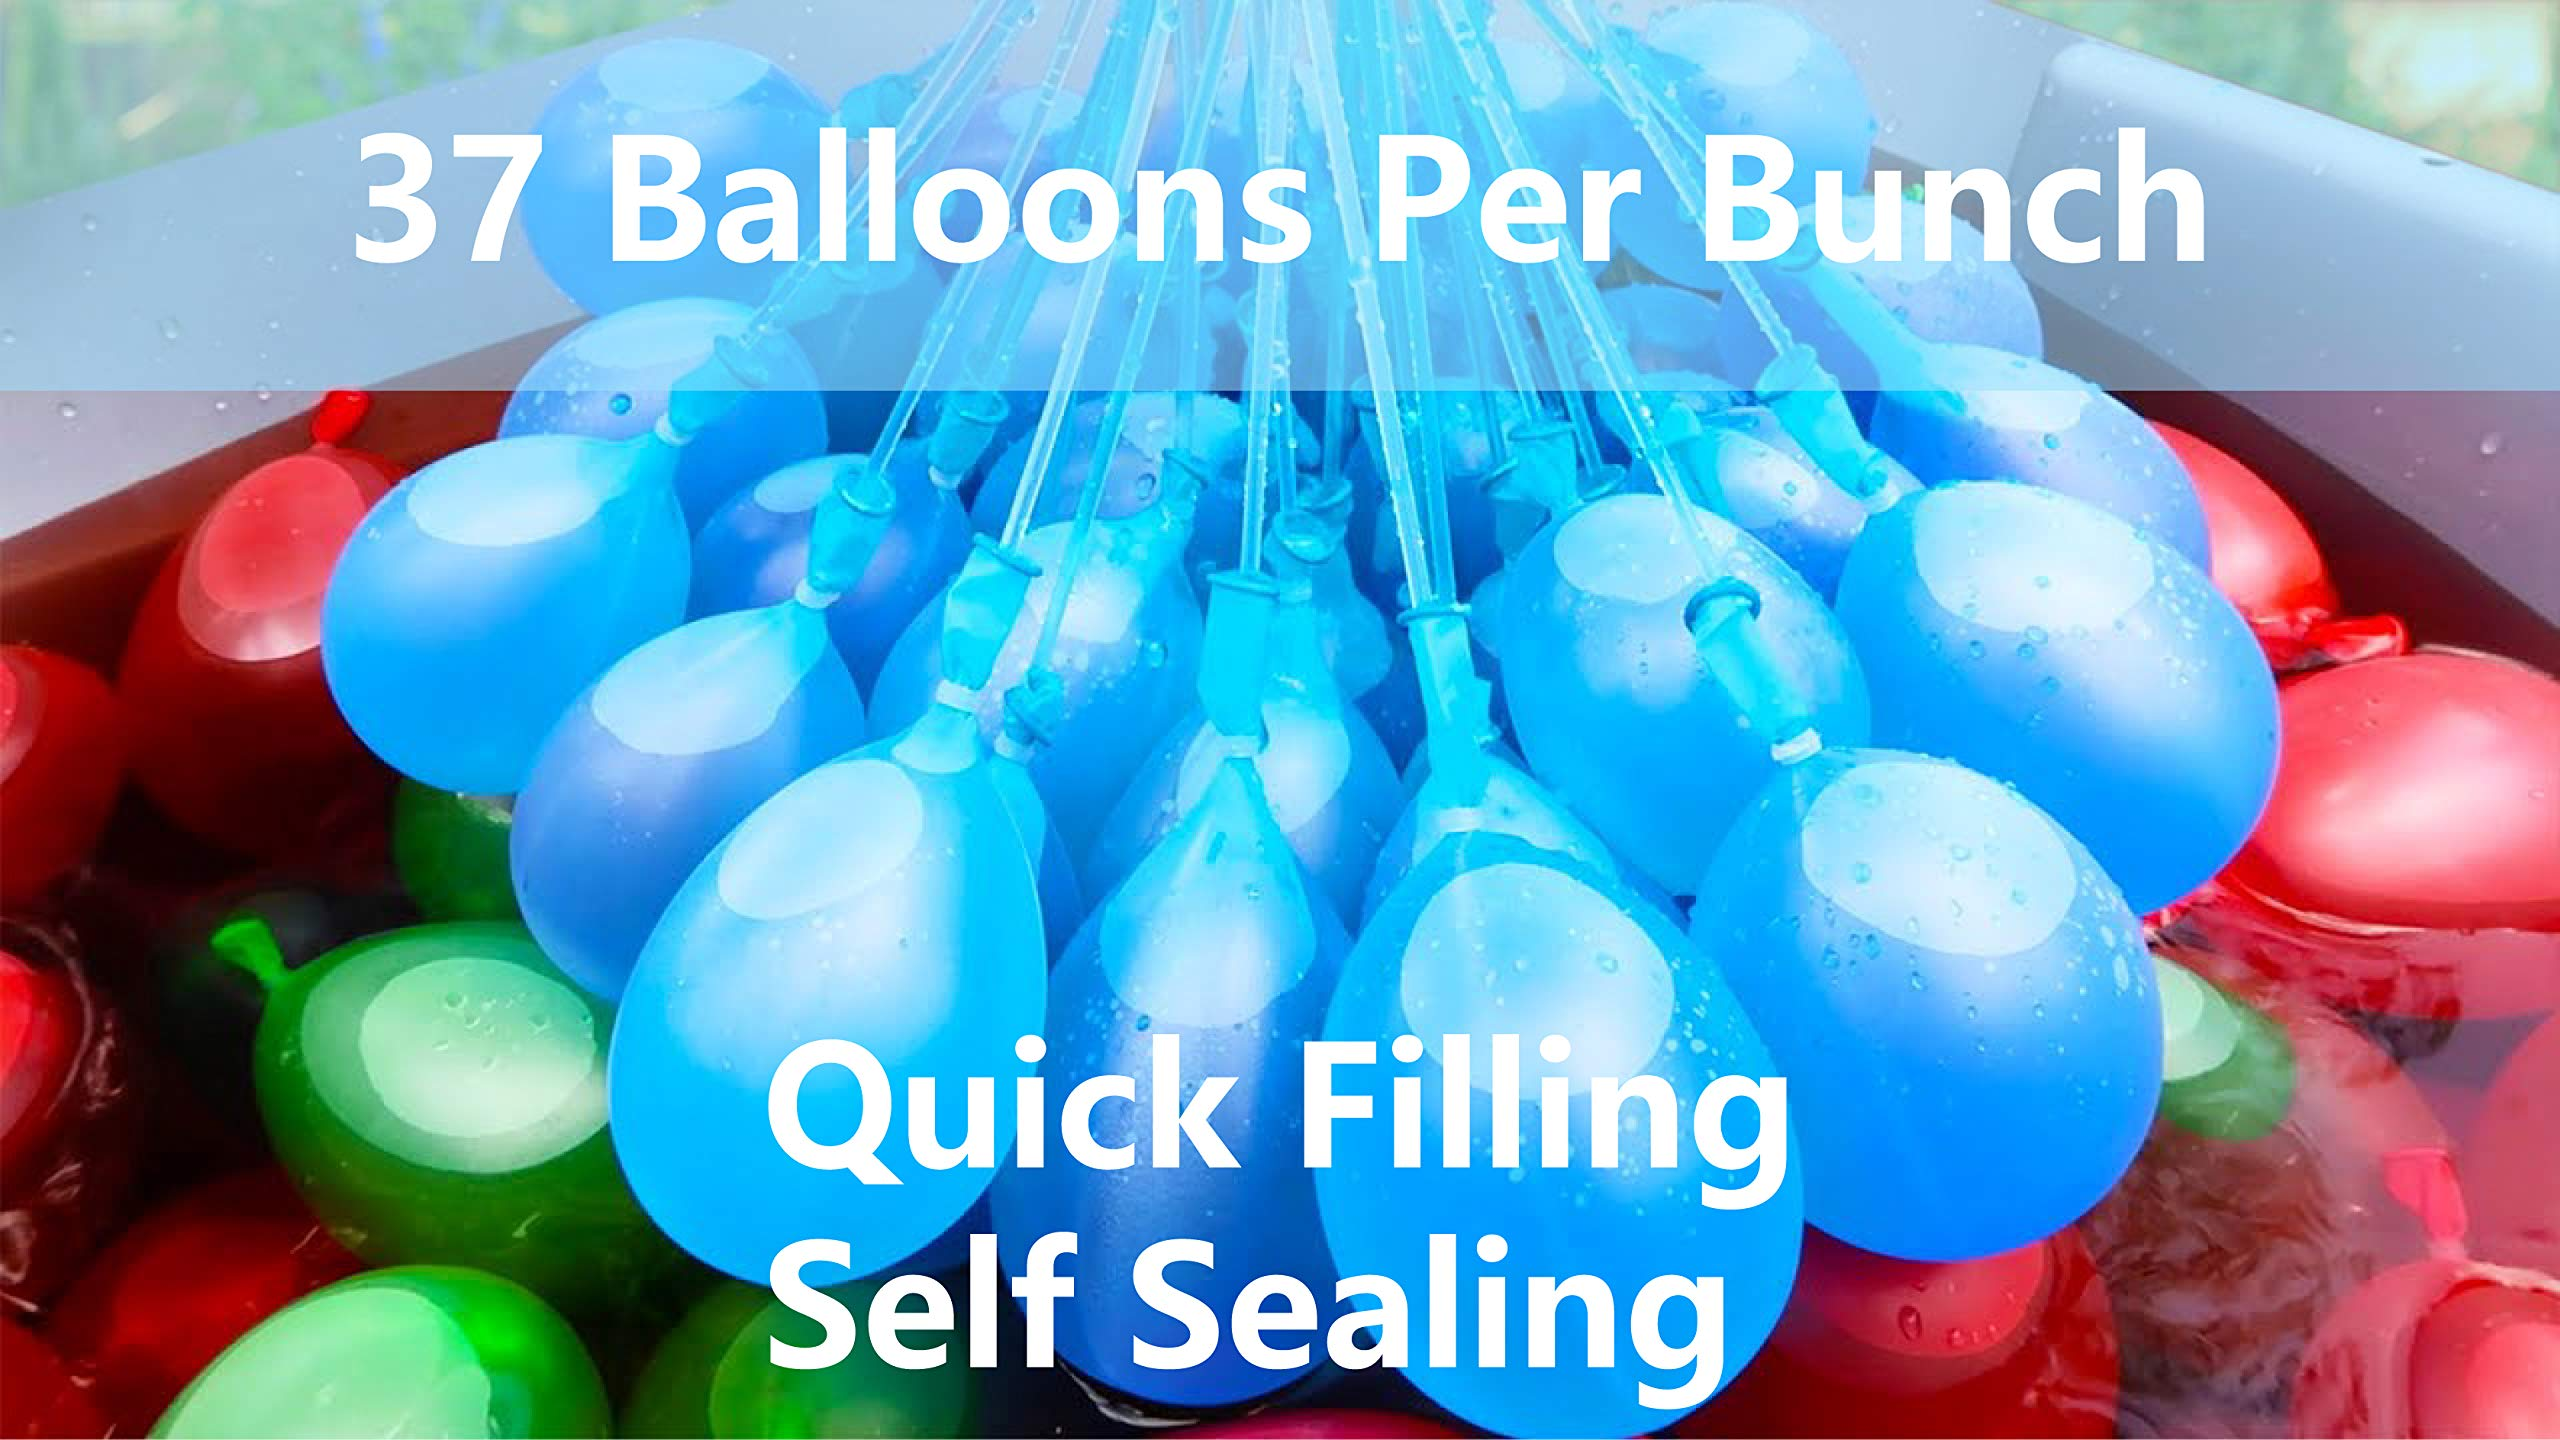 bueyu Bunny Water Balloons, Instant Quick Fill Water Balloons-8 Bunches Total 296 Multi-Color Water Balloons, Summer Splash Fun for Kids & Adults by Magic balloons (Image #2)